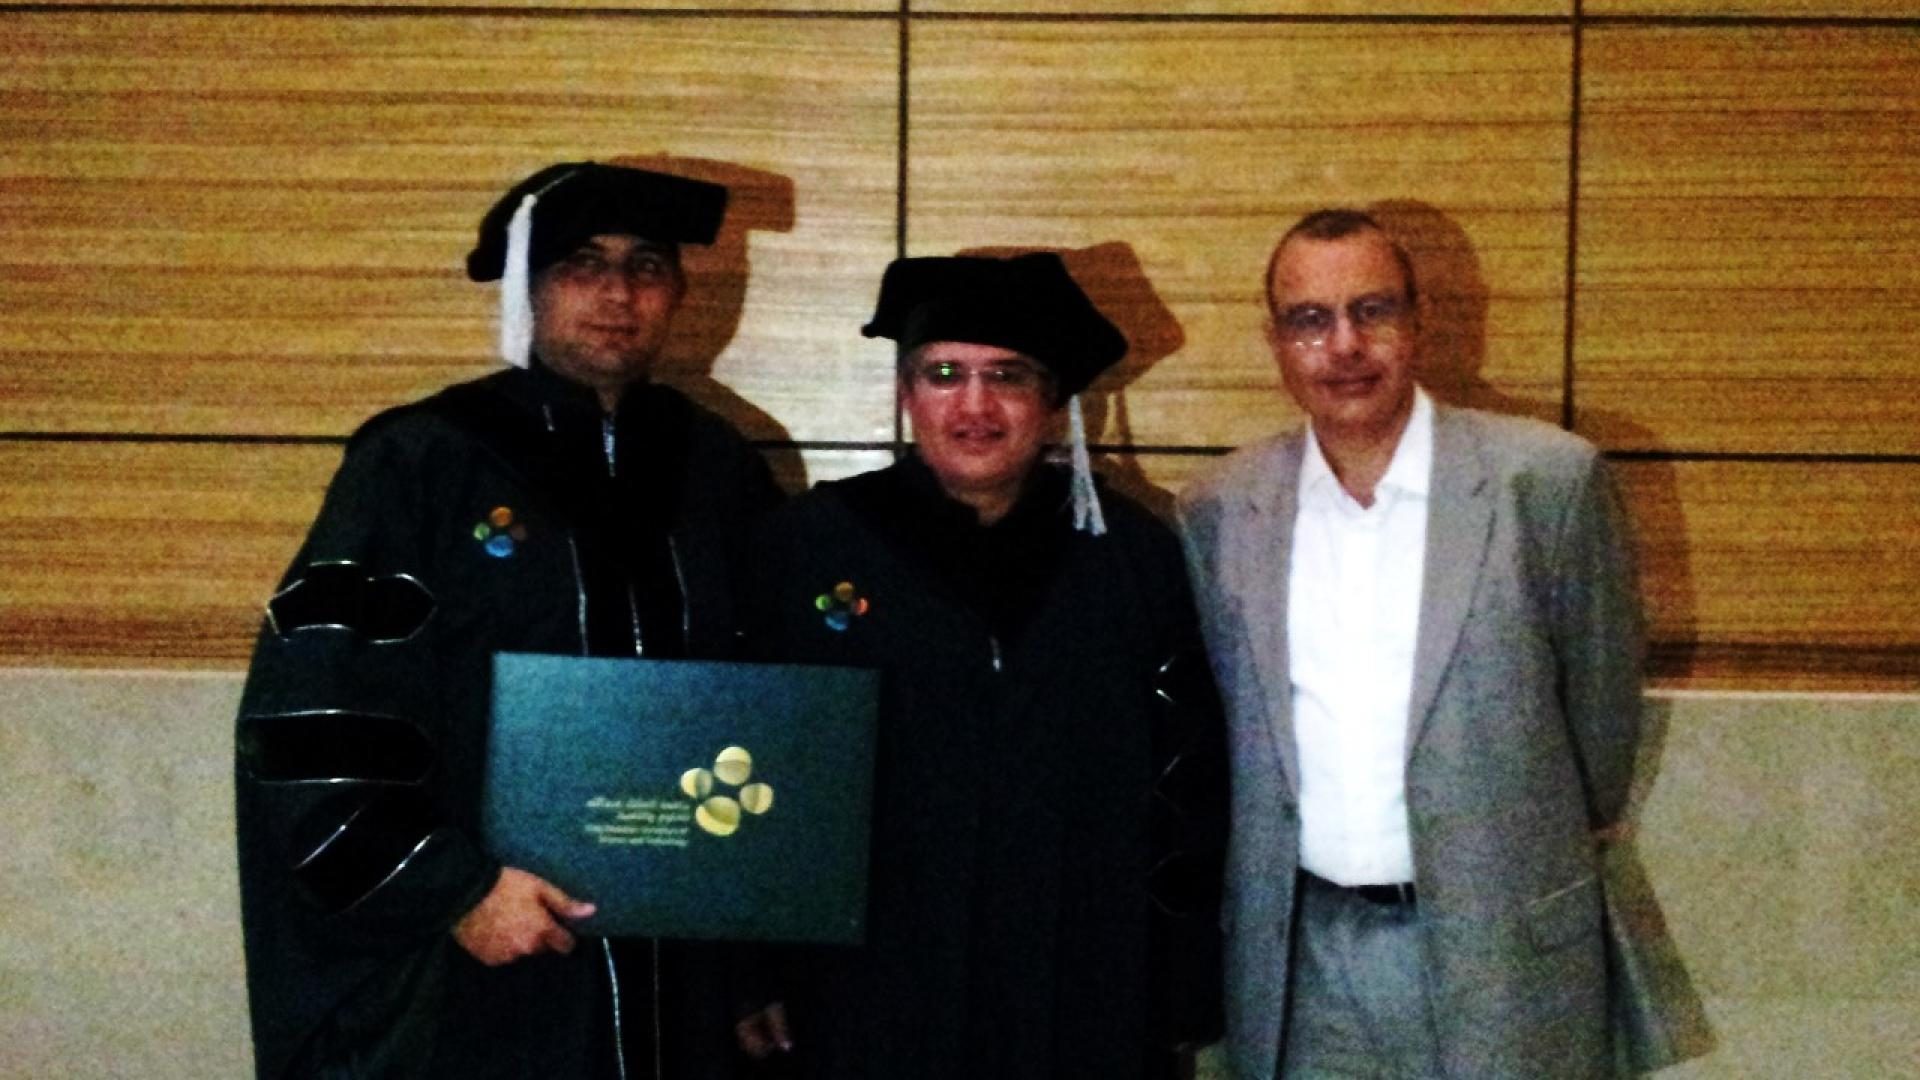 Professor Alouini with Hakim Ghazzai and Dean Mootaz Elnozahy during graduation ceremony